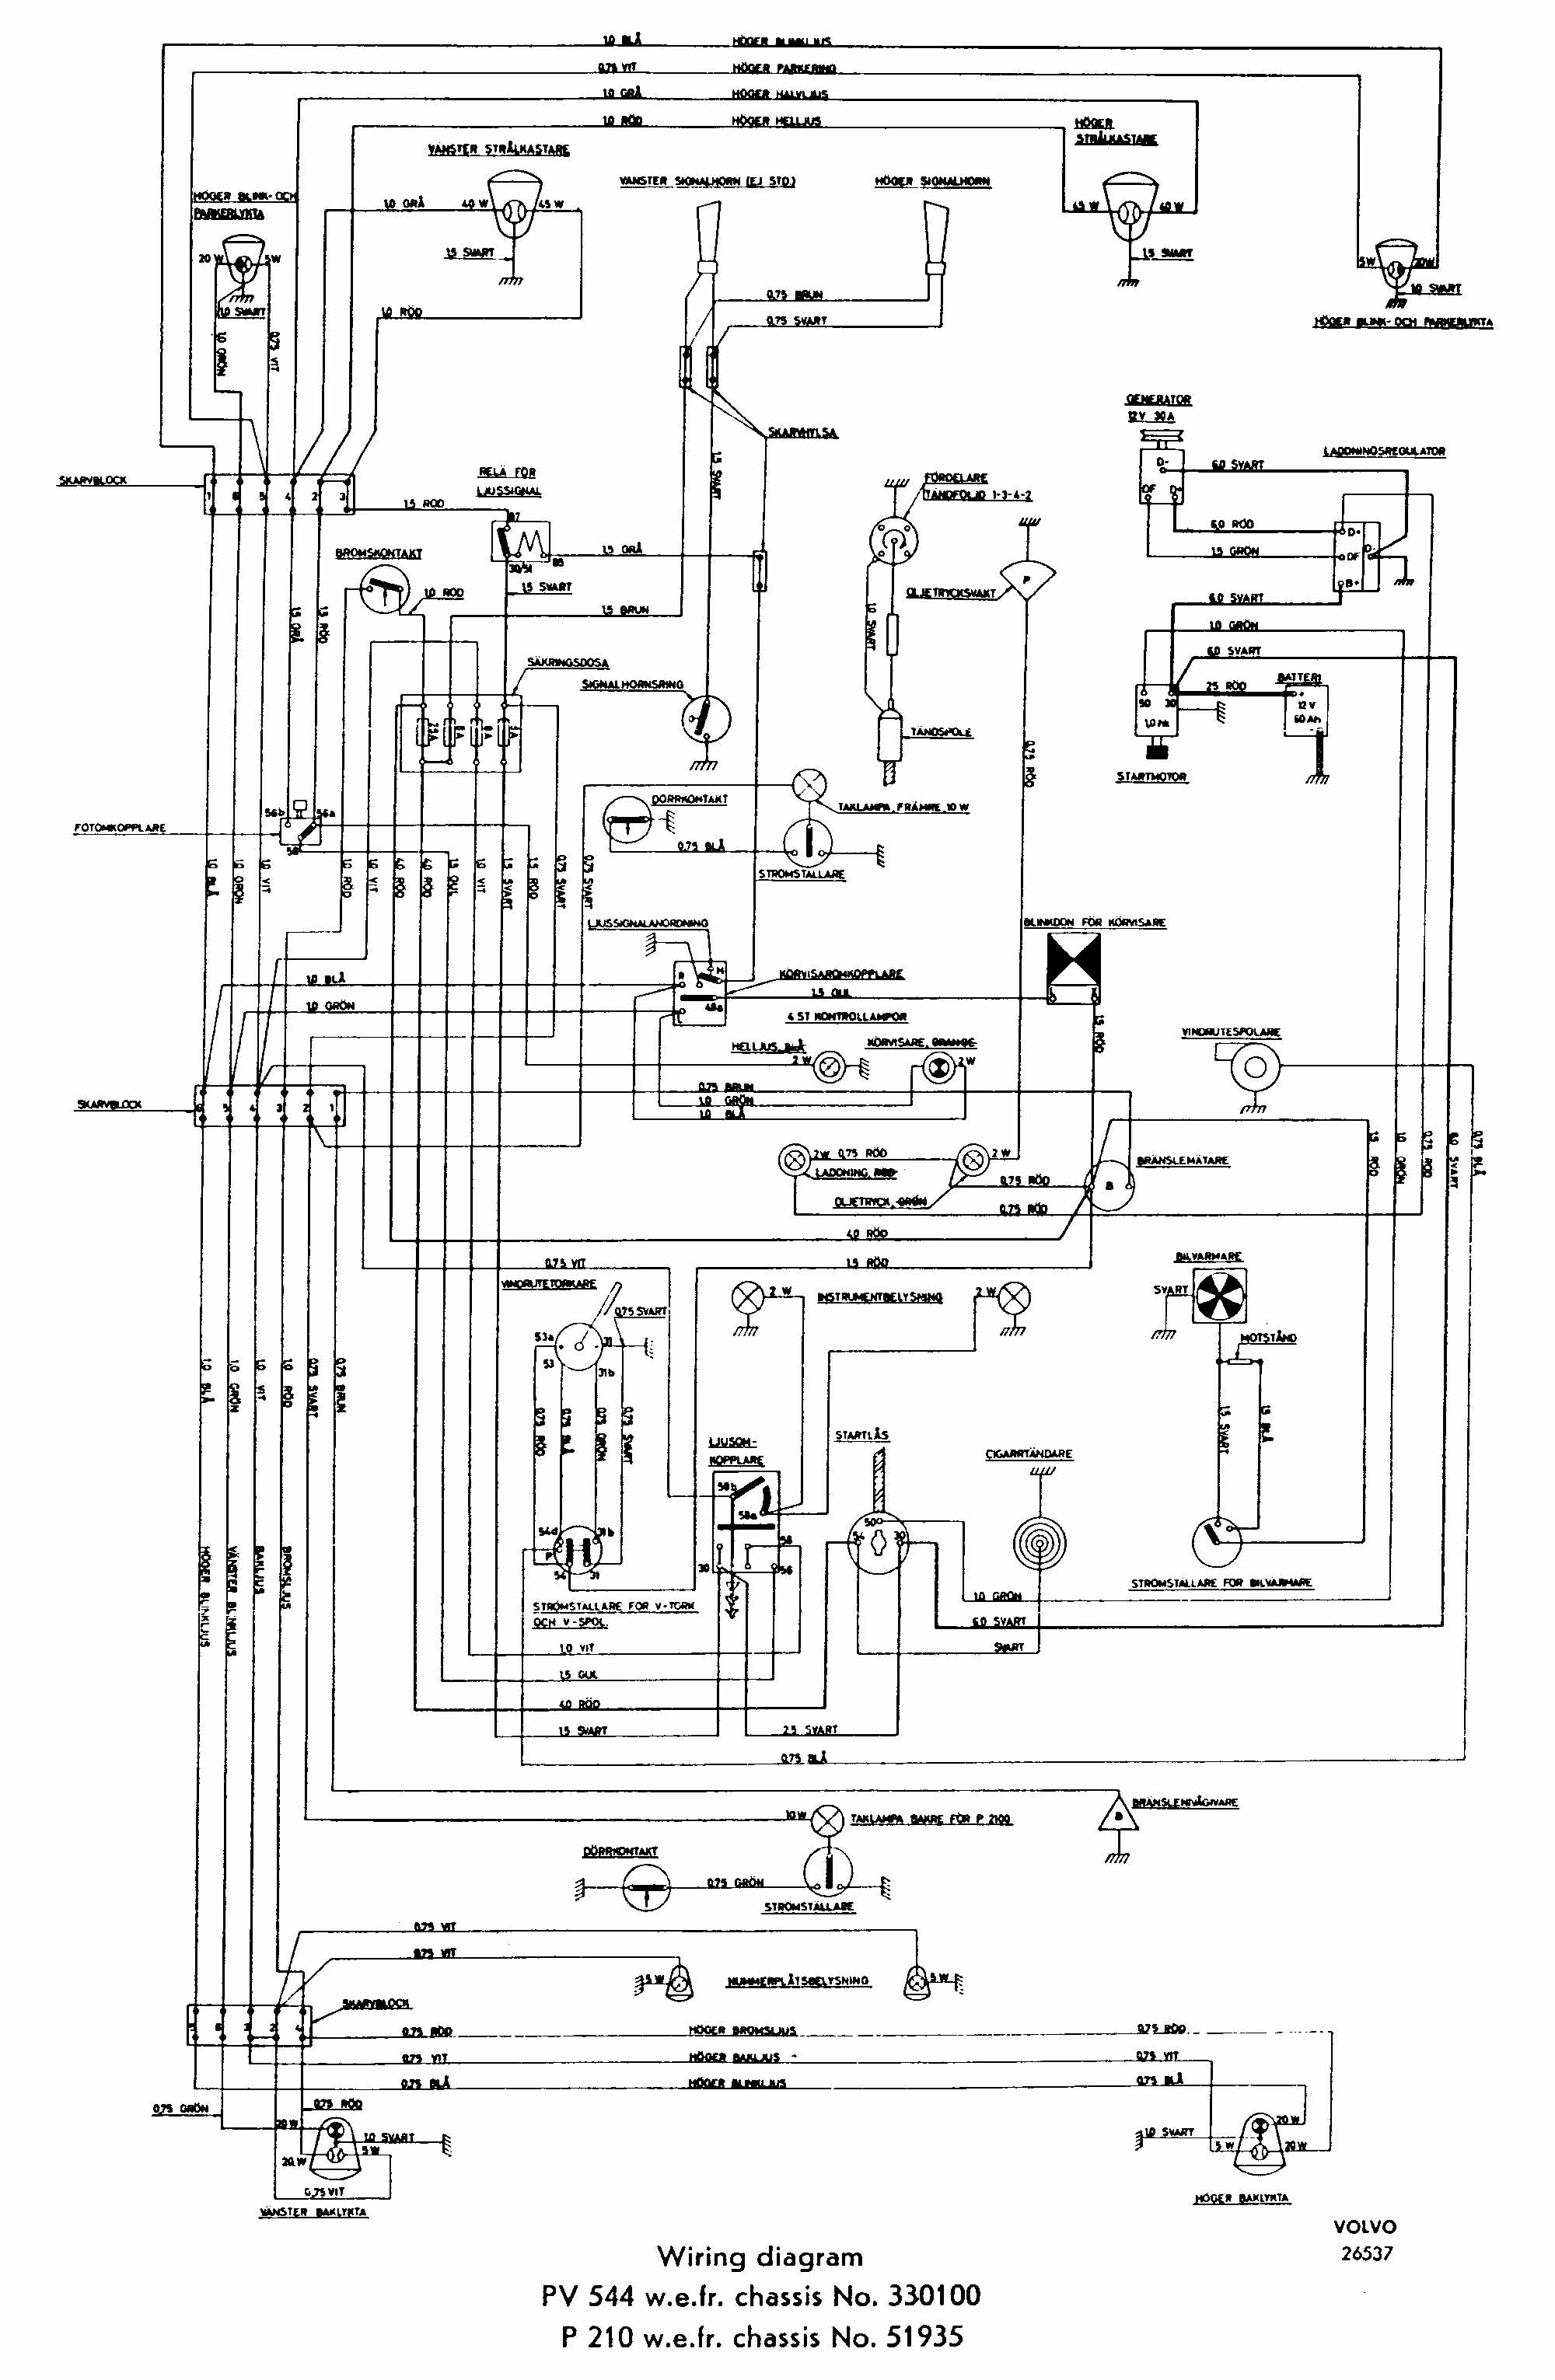 Volvo N10 Wiring Diagram Schematics C70 Stereo 960 Page 5 And Diagrams 121 1966